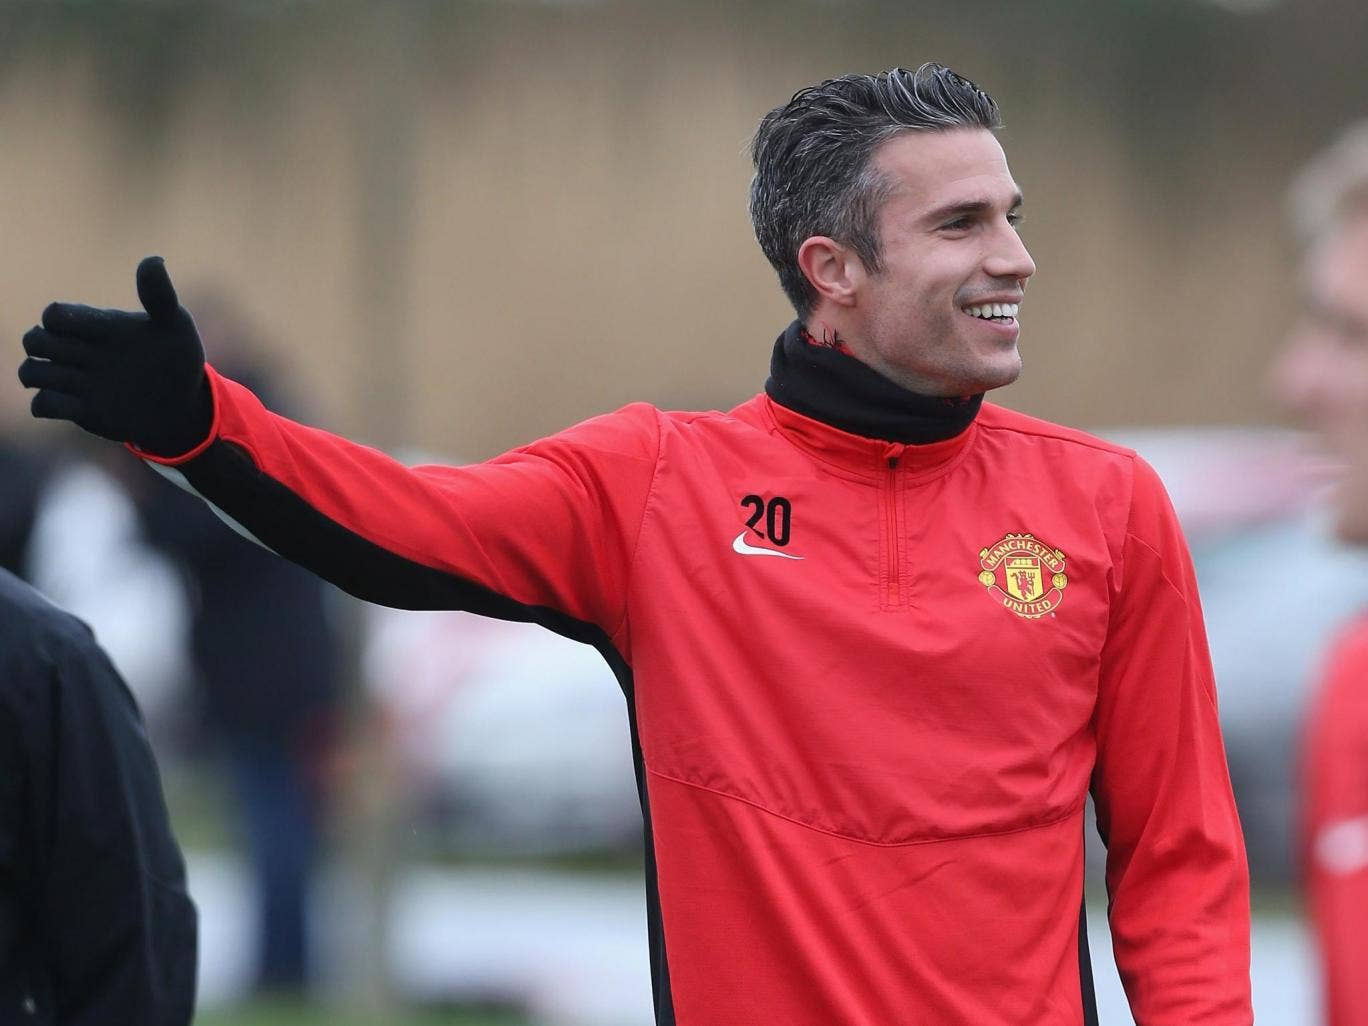 Robin van Persie's return from injury has restored United's most potent attacking combination